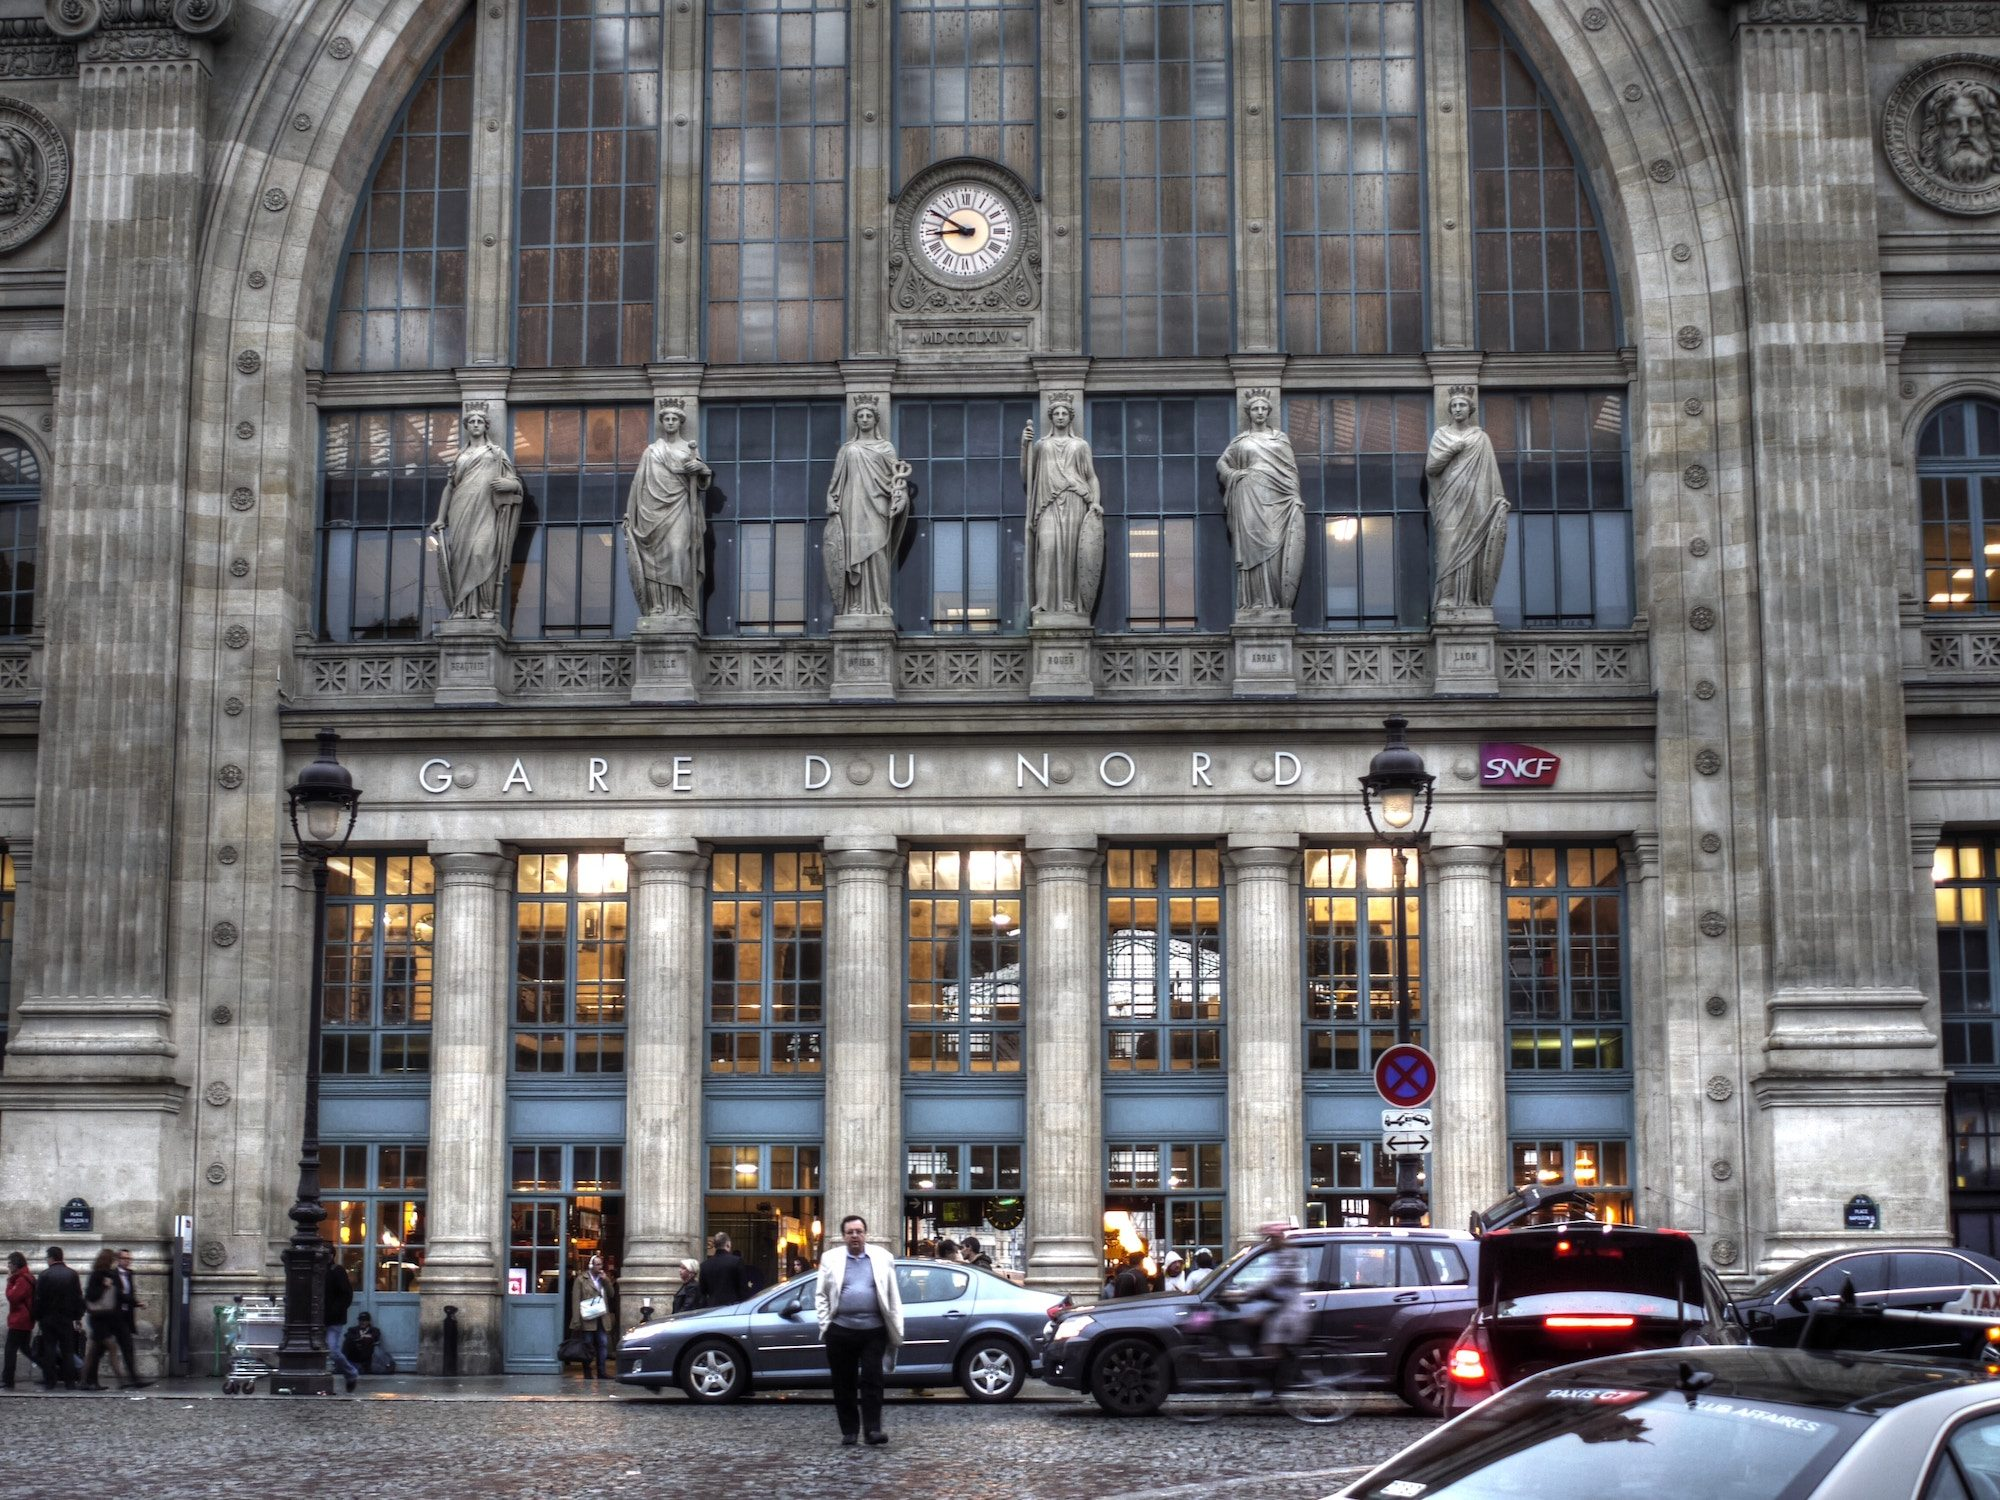 The beautiful statues lined up above the Gare du Nord's main entrance in Paris on a grey rainy day with a taxi driver standing in the foreground.